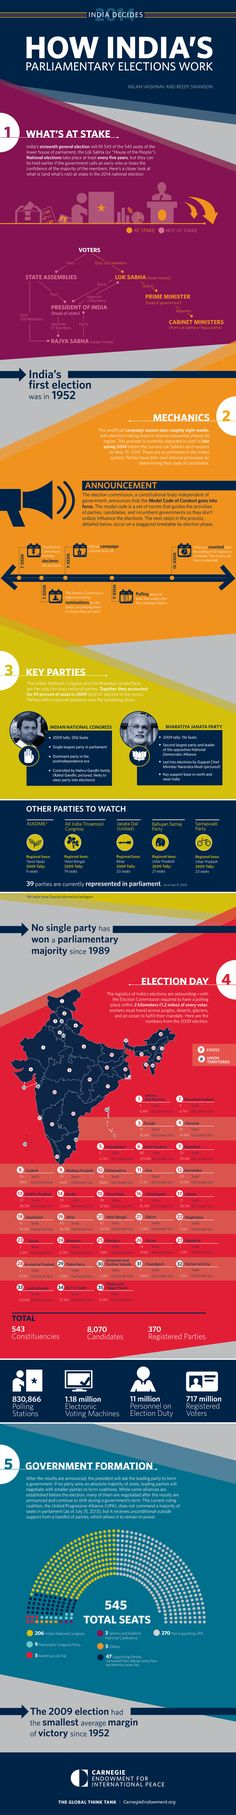 India is gearing up for the largest democratic exercise ever recorded—its 2014 parliamentary election. A new infographic explains what's at stake and how the system works. Gernal Knowledge, General Knowledge Facts, Knowledge Quotes, English Teaching Materials, Study Materials, Ias Study Material, Upsc Civil Services, Economics Lessons, Parliamentary Elections